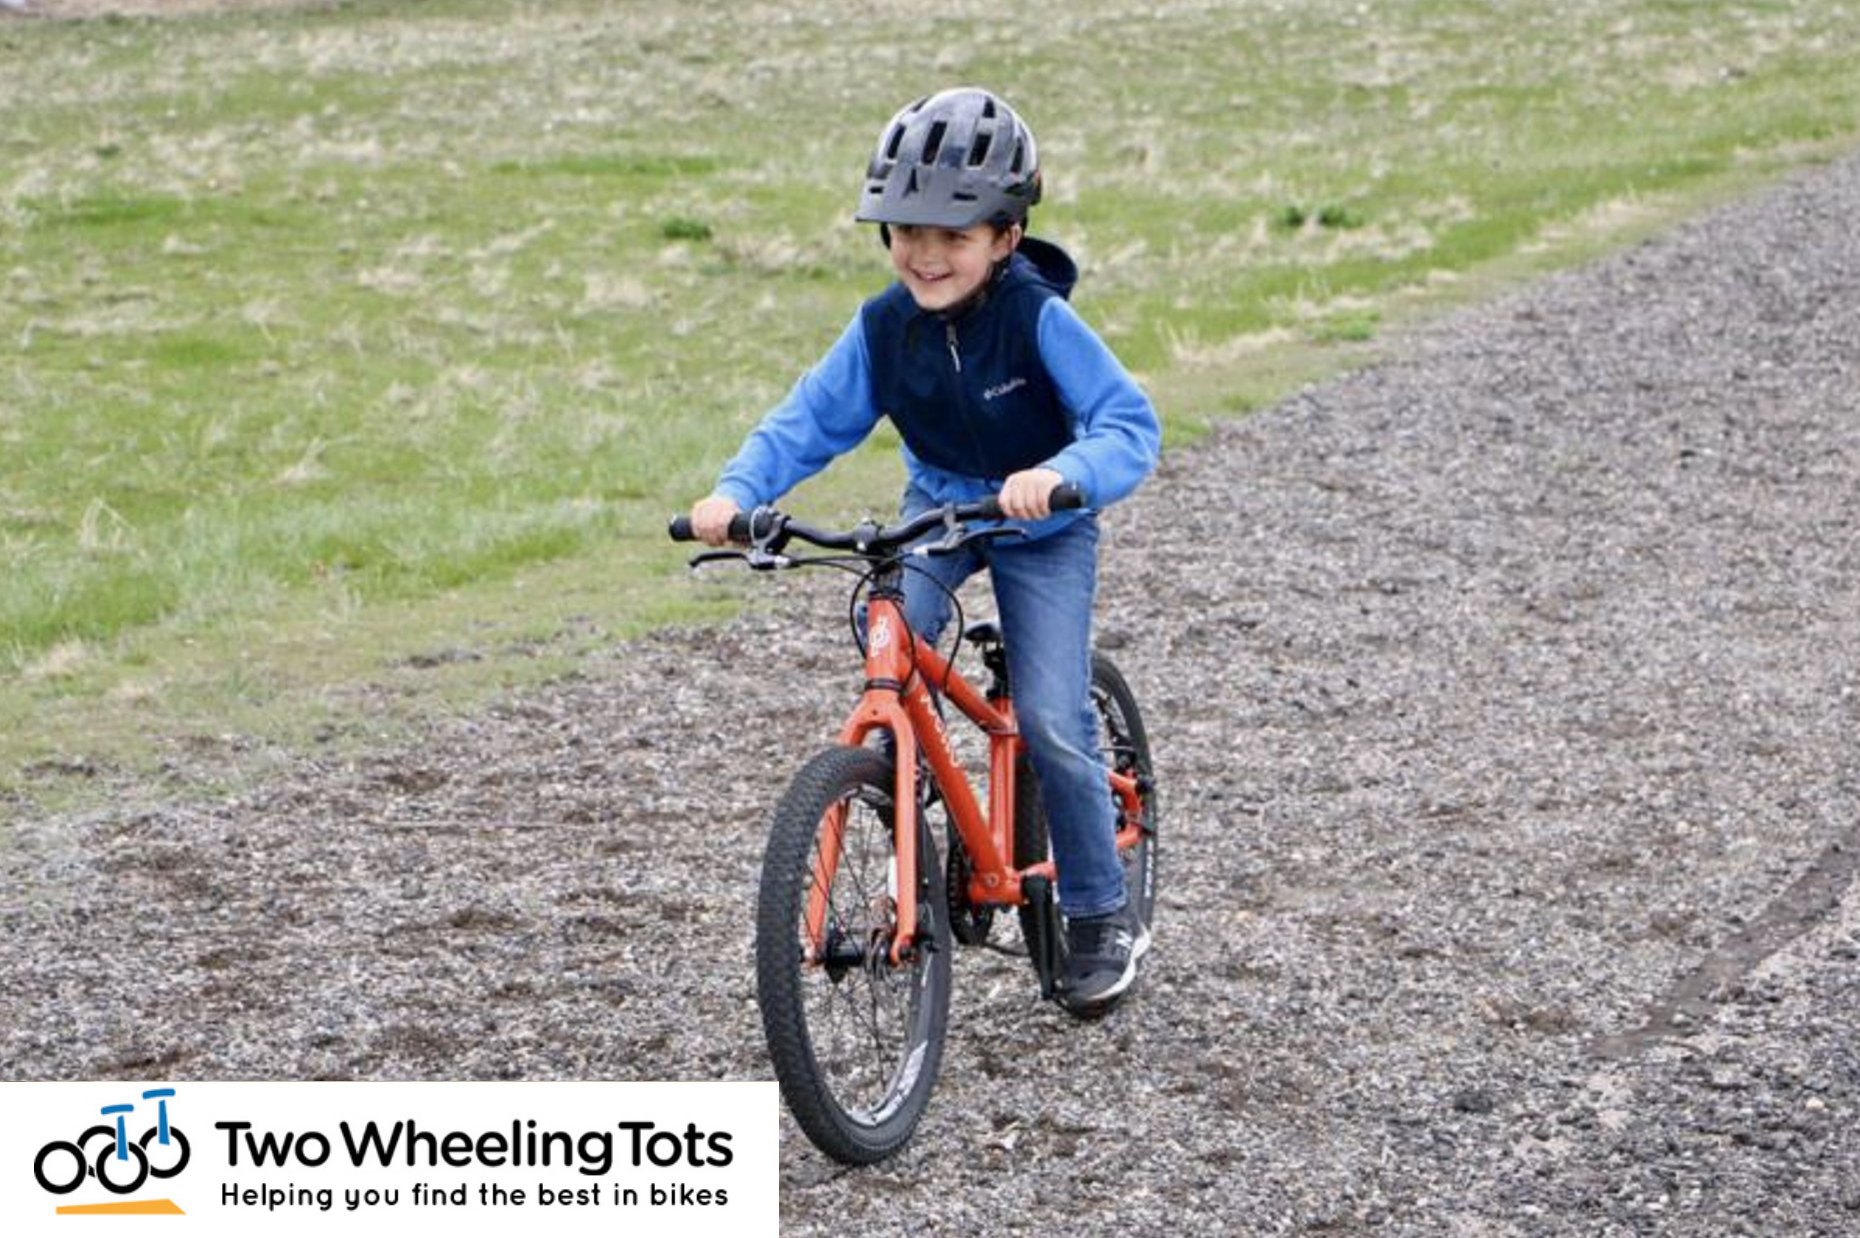 The Pello Rover offers a well-thought-out combination of technically capable, yet easy-to-use components that are suitable for 6 to 8 year-olds. - twowheelingtots.com